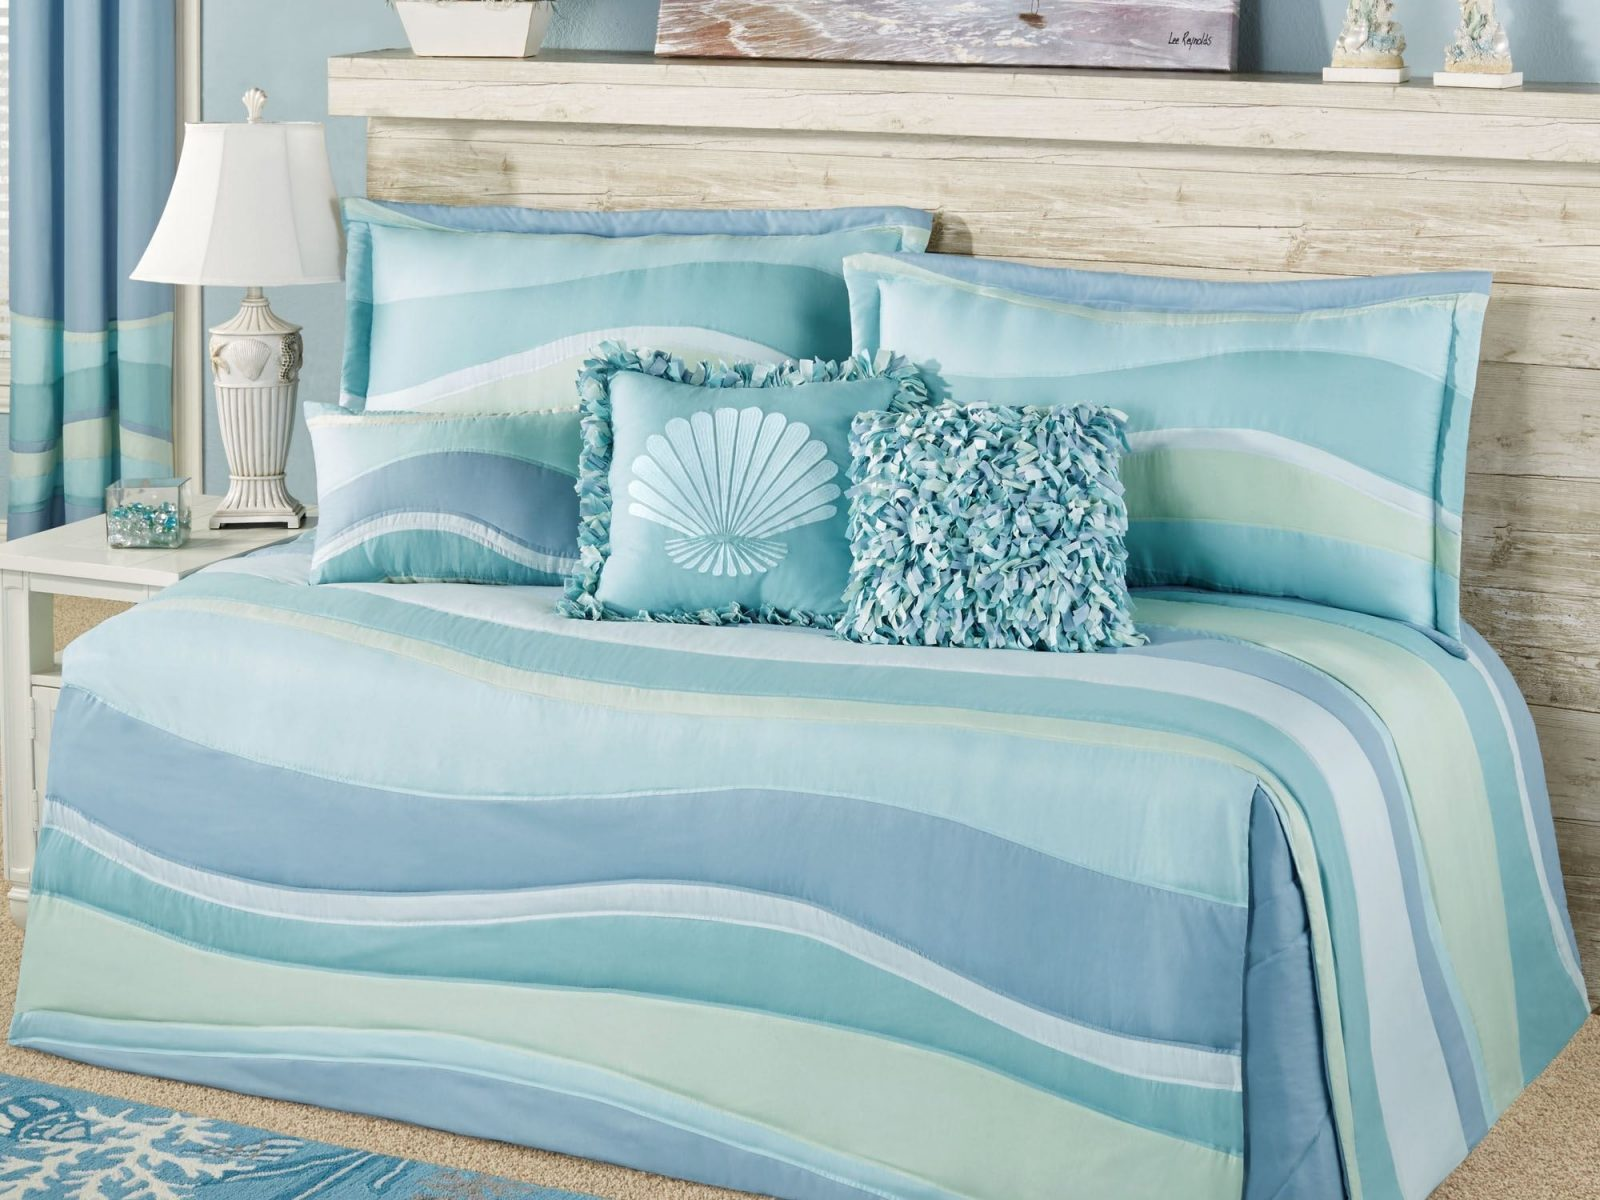 daybed bedding sets sears photo - 9